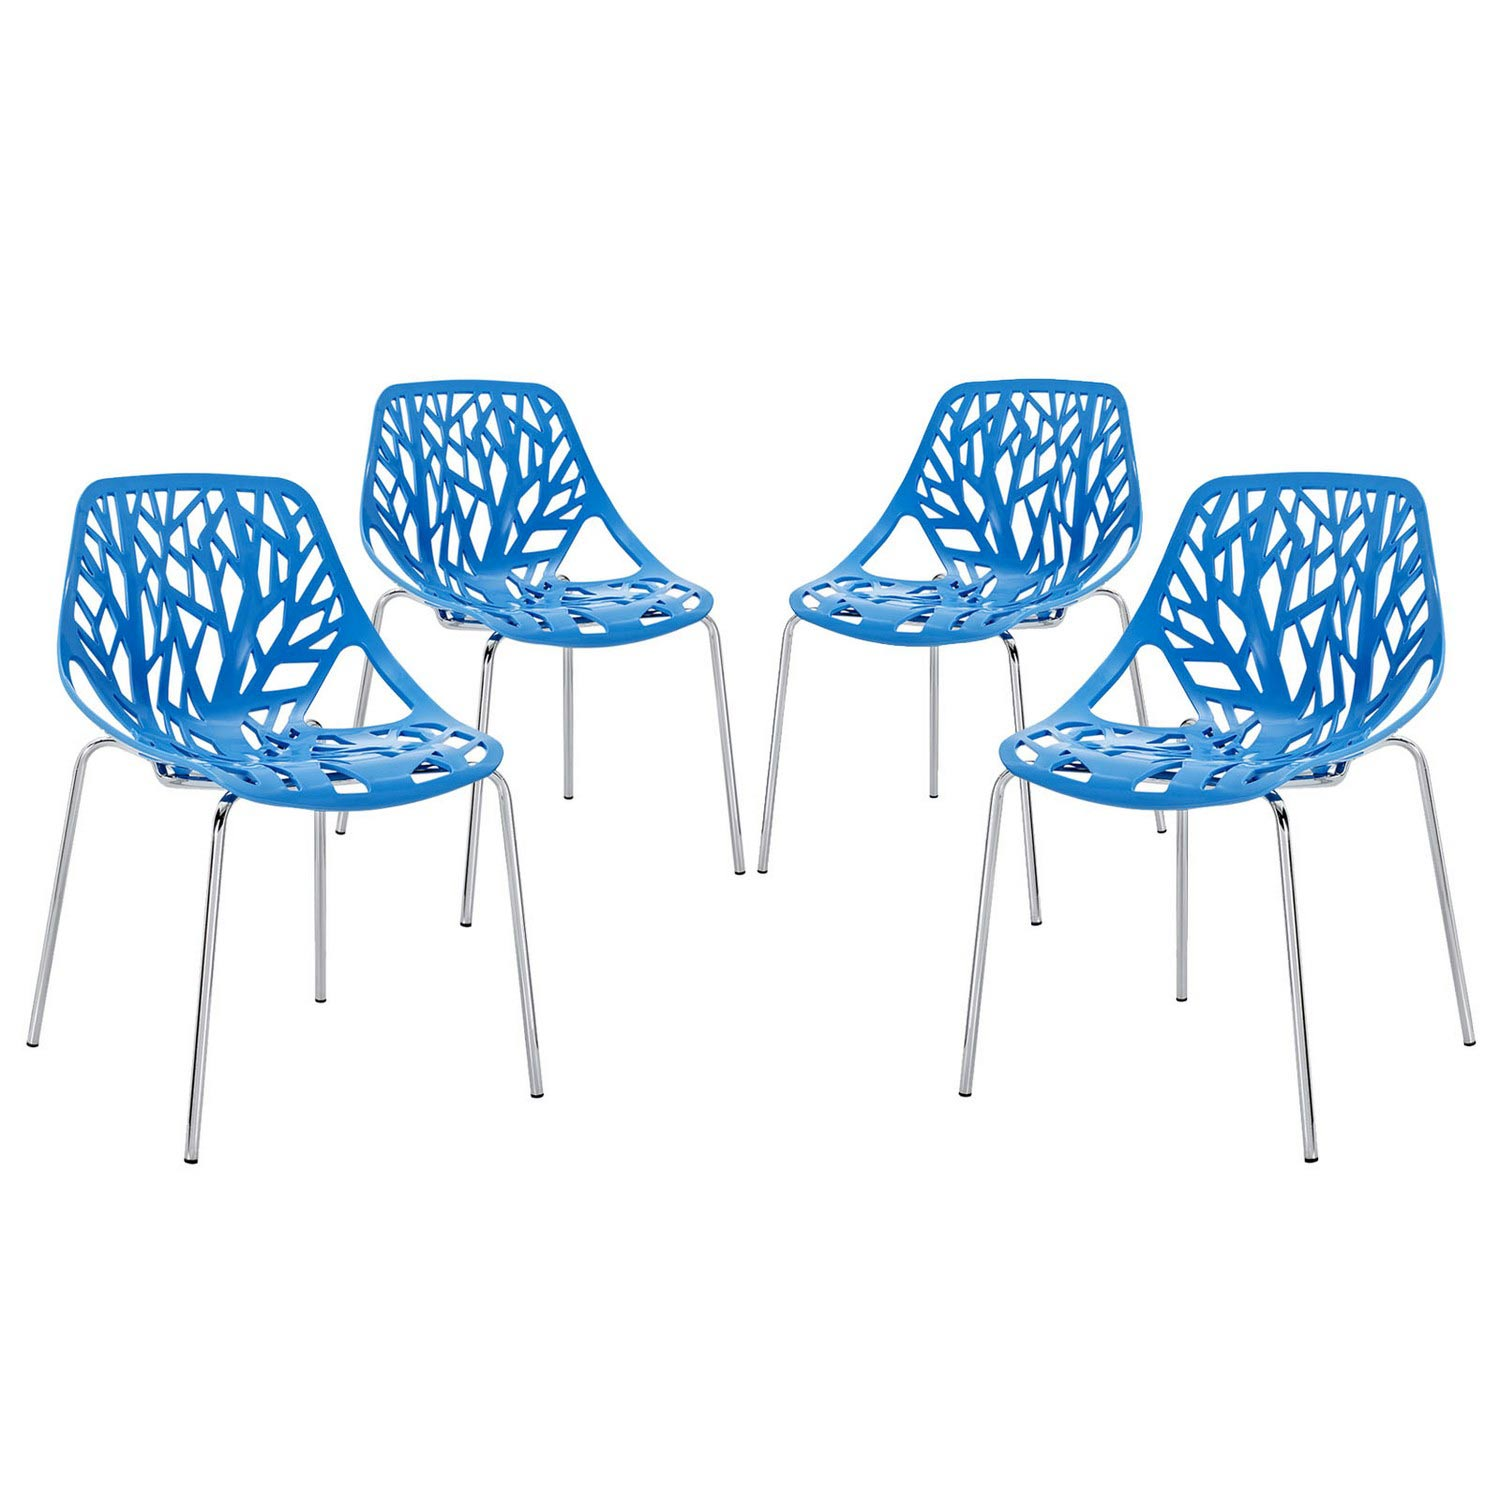 Modway Stencil 4PC Dining Side Chair Set - Blue